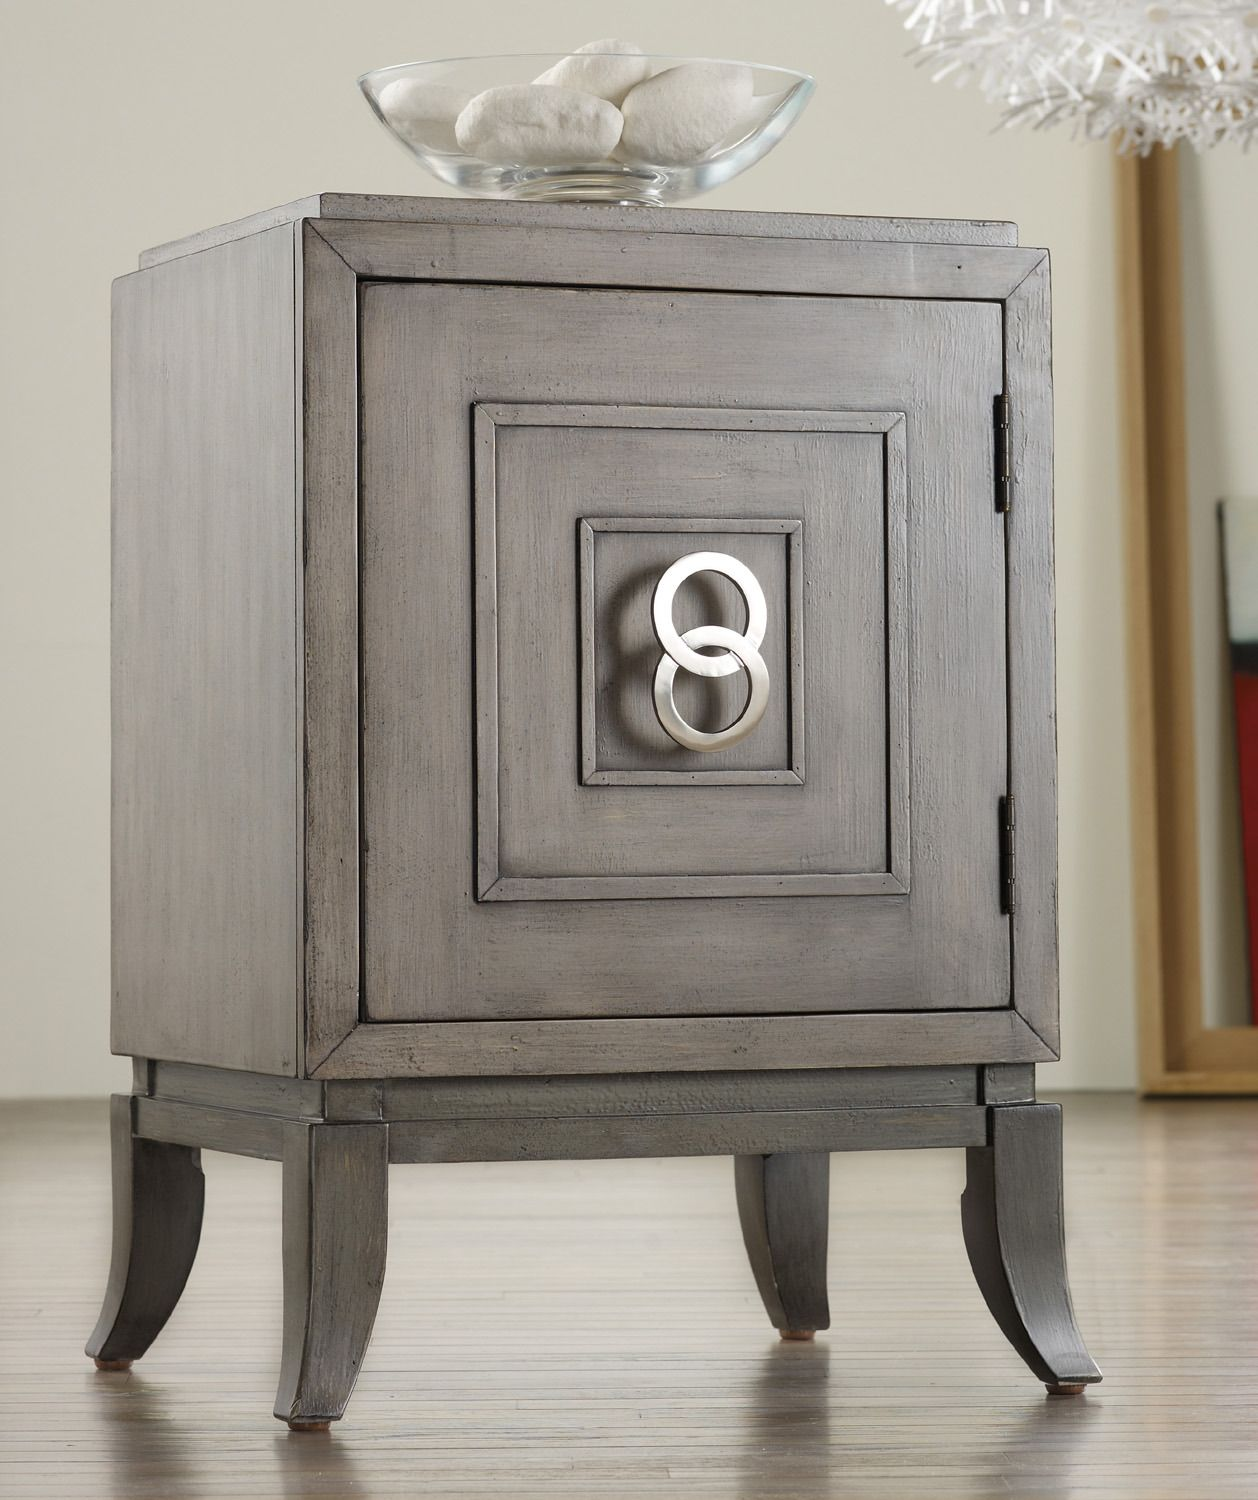 Melange Easton Chairside Chest By Hooker Furniture   Home Gallery Stores